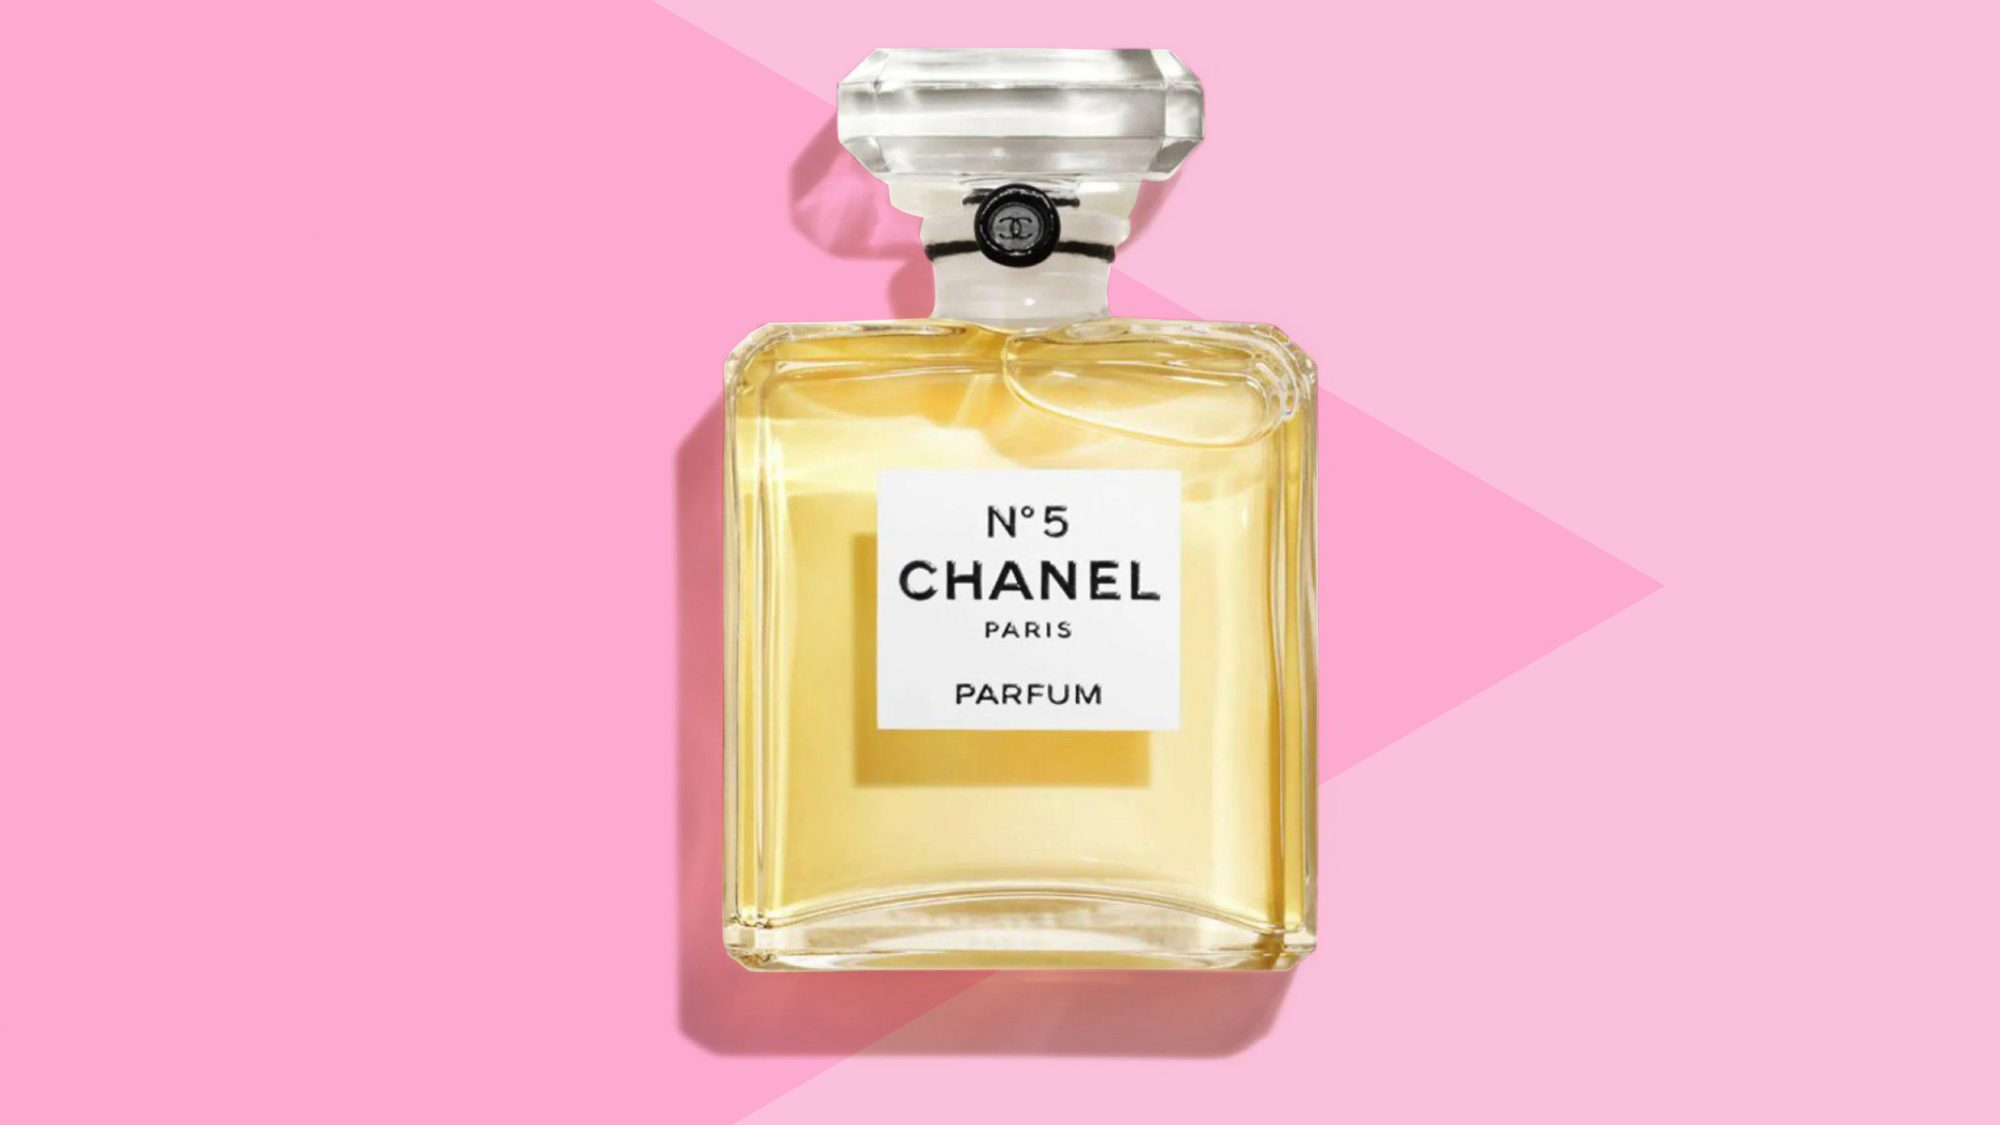 Valentine's Day gifts for her - valentine ideas for her, women, girlfriend, wife